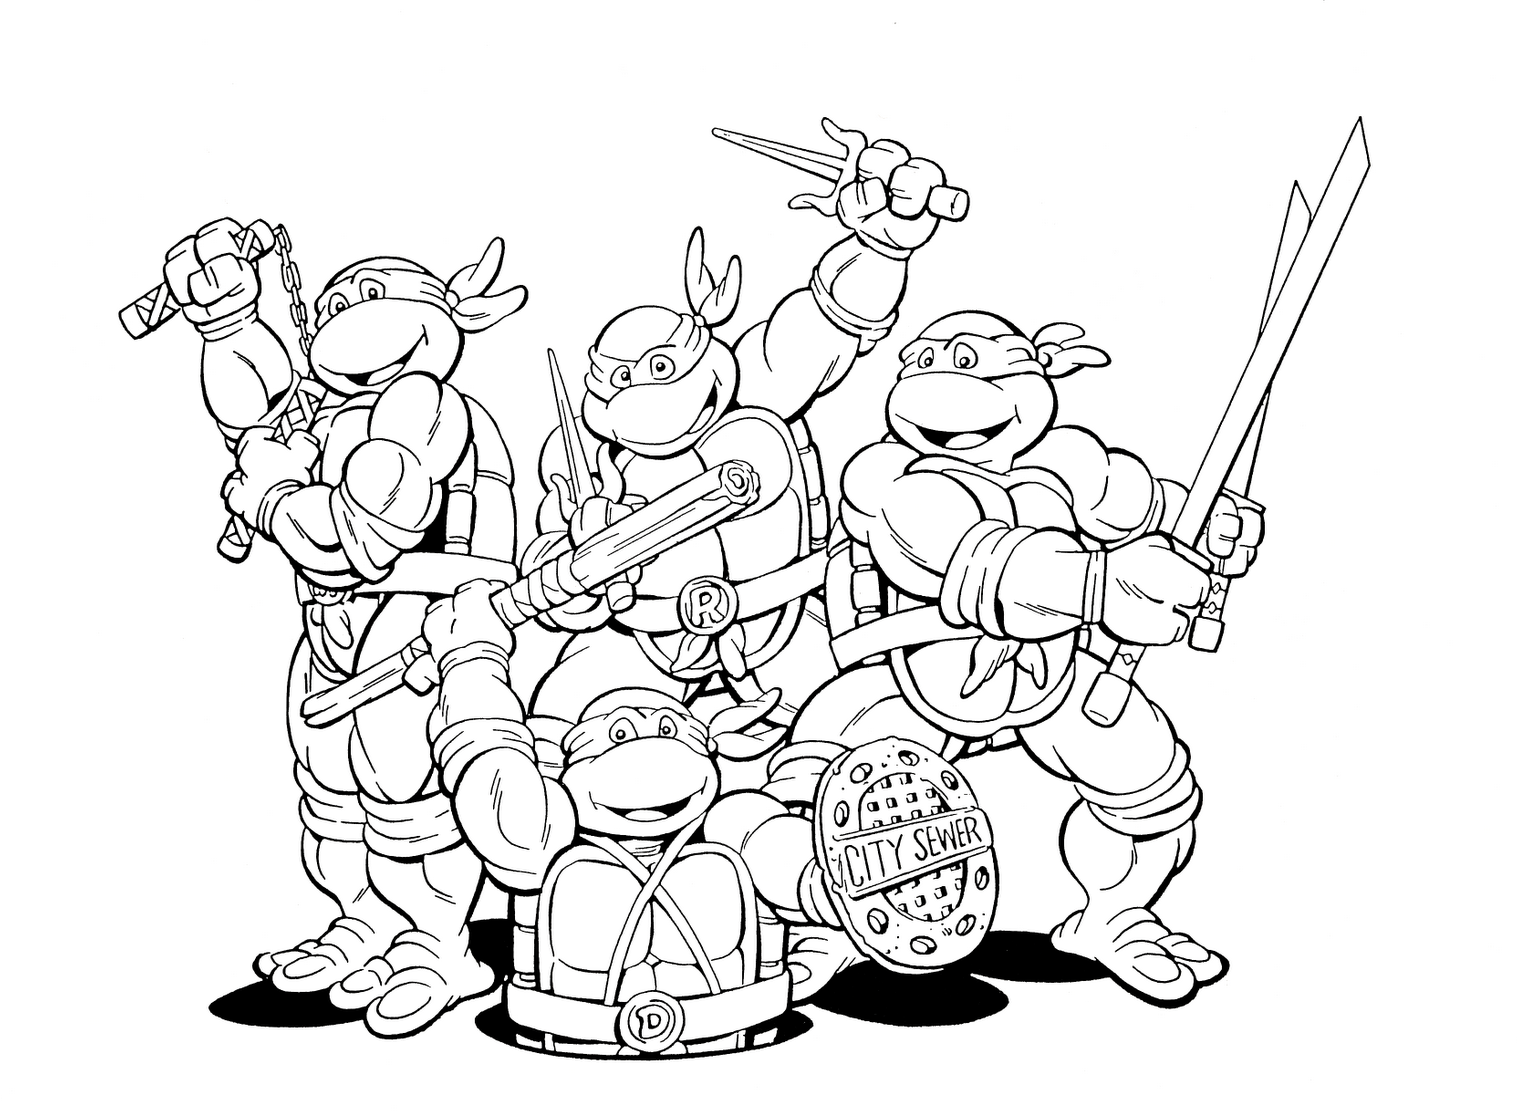 Ninja Turtles Funny Coloring Pages | Kids | Pinterest